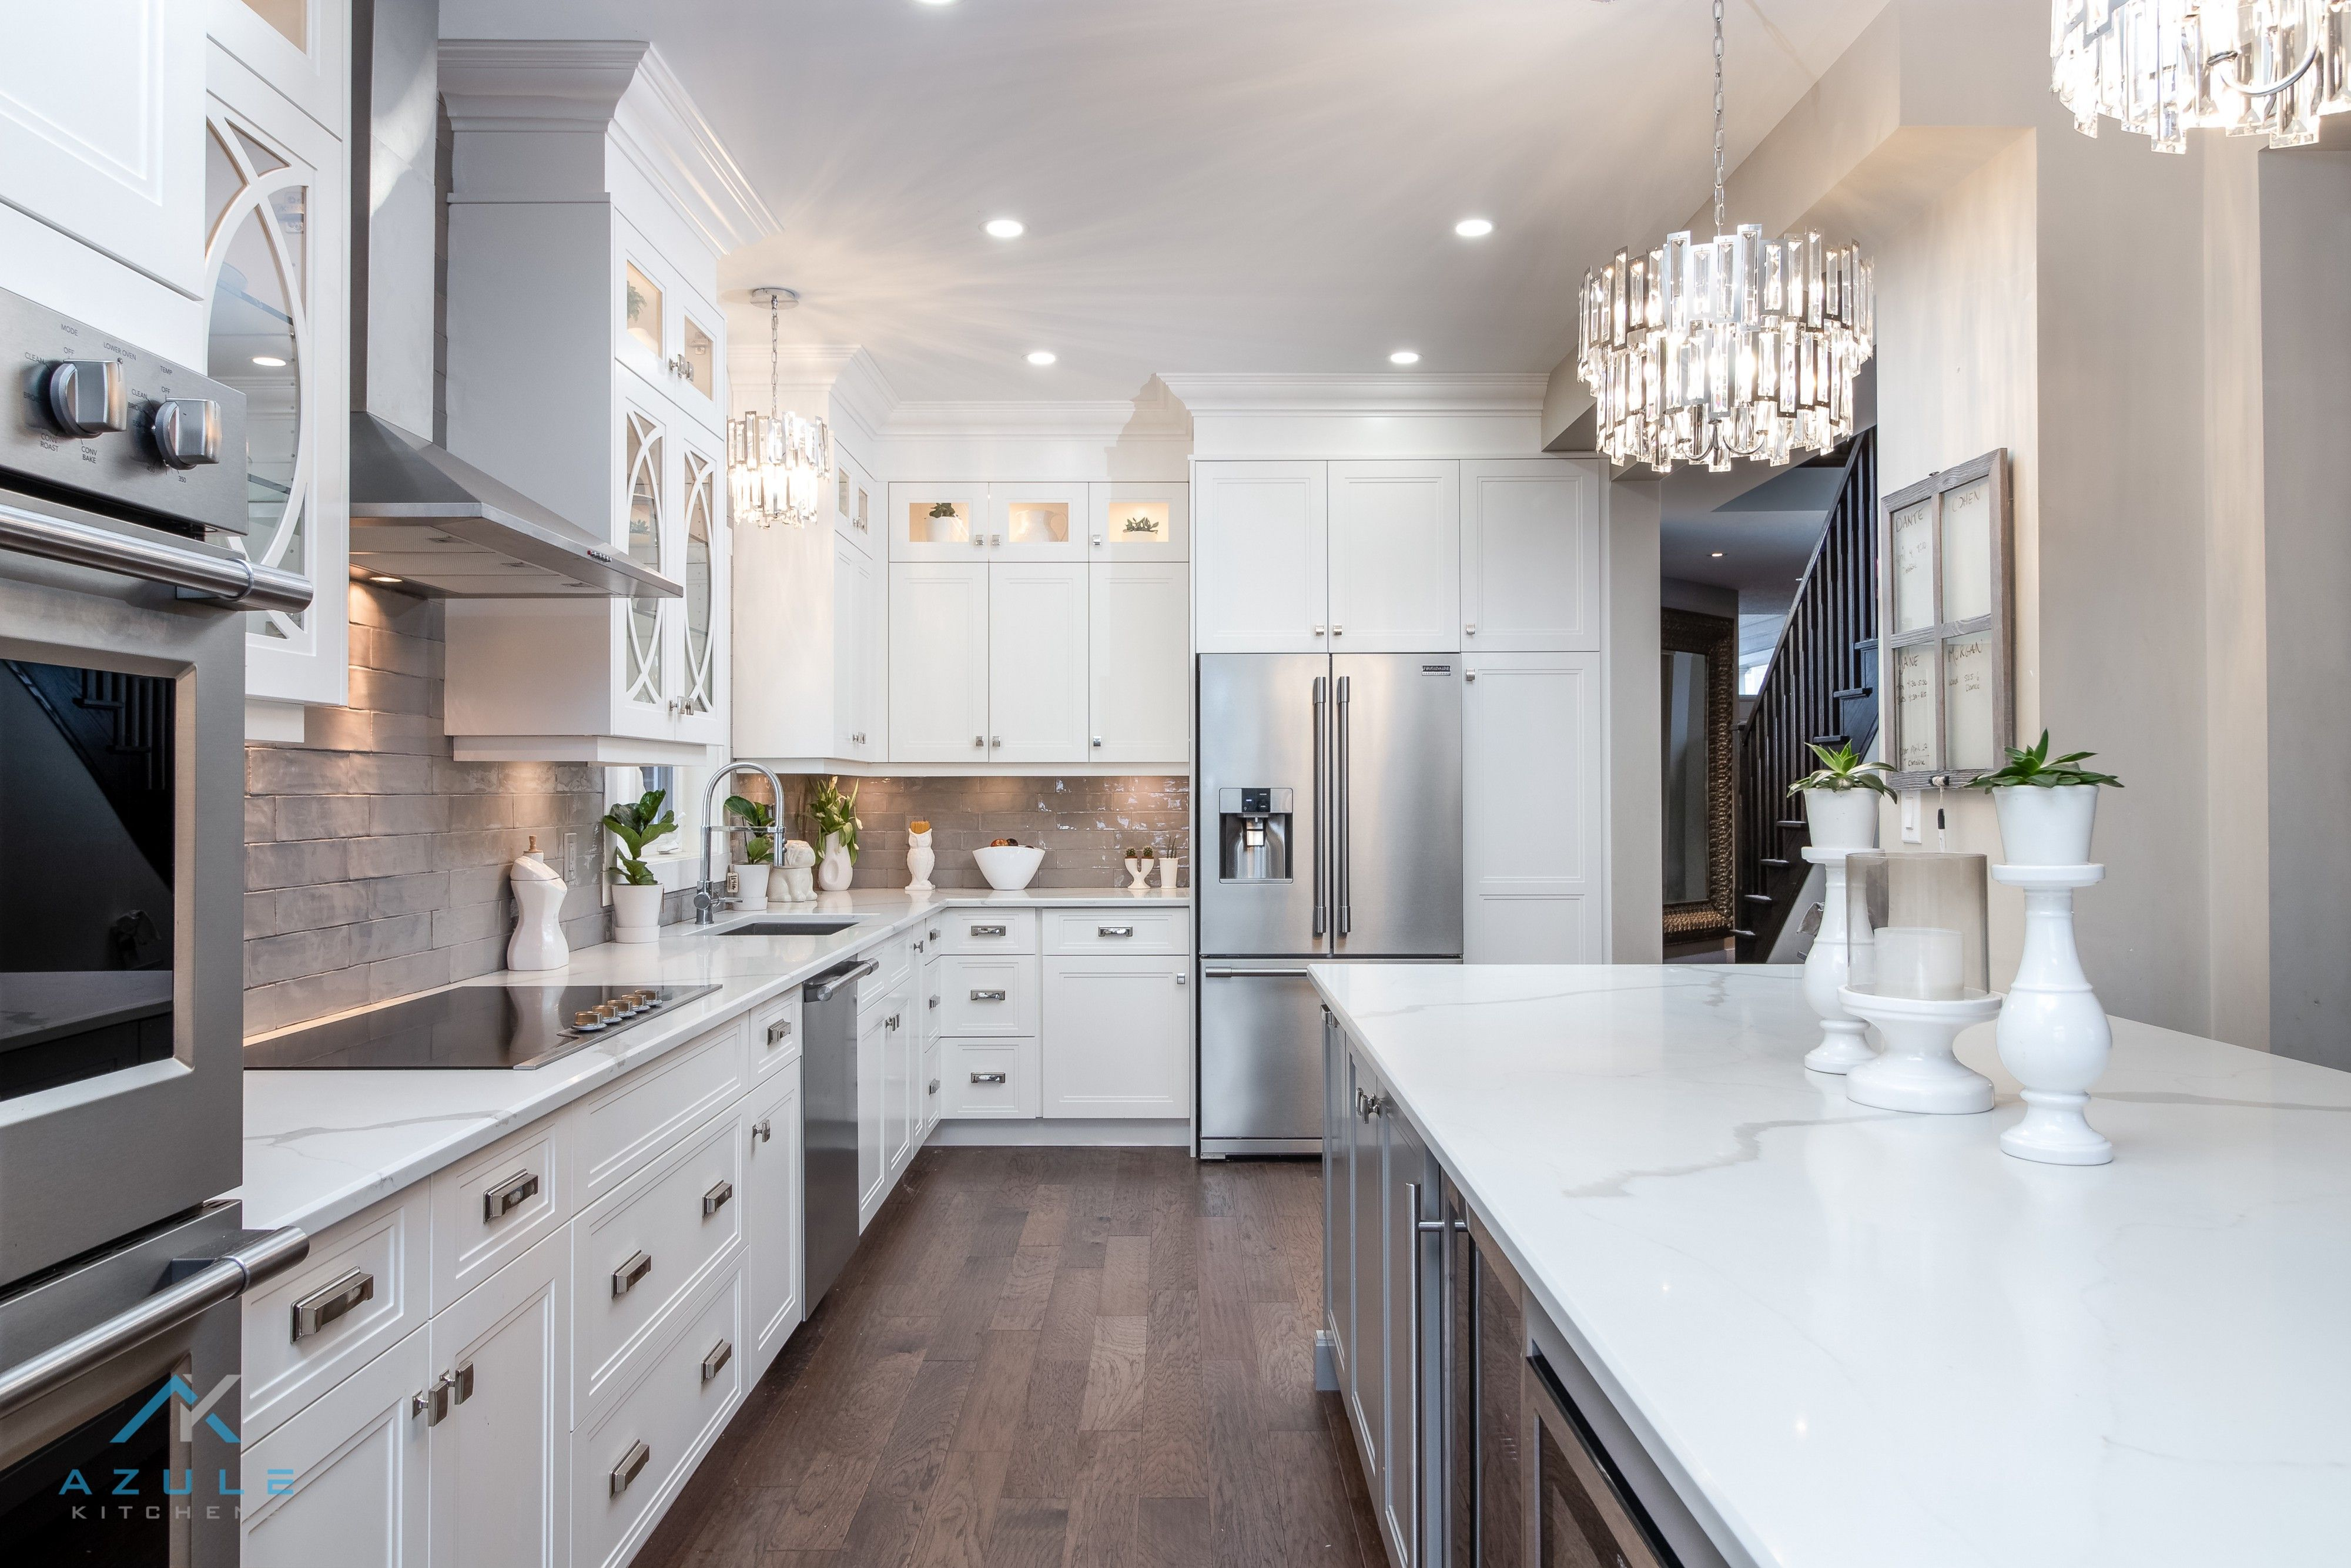 Azule Kitchens Remodel Your Kitchen Cabinates With More Stylish Look Quality Kitchen Cabinets Kitchen Remodeling Services Kitchen Cabinet Makers